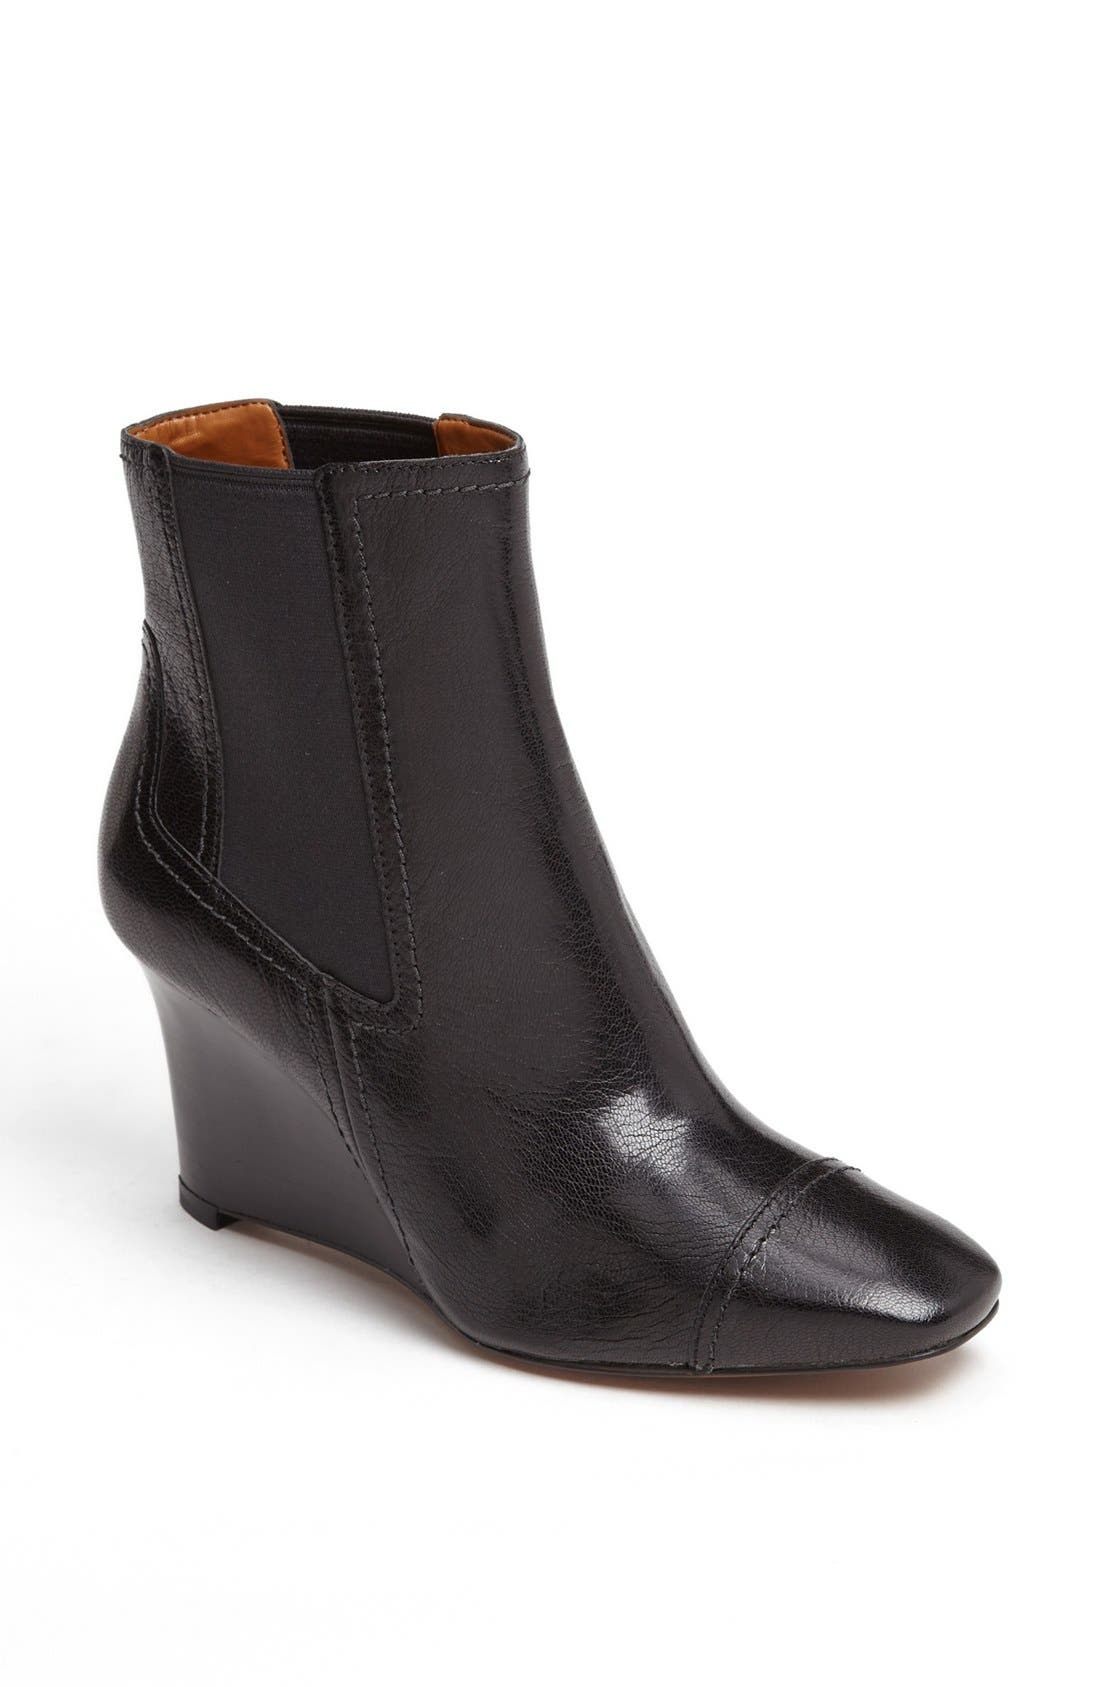 Alternate Image 1 Selected - Nine West 'Xepted' Wedge Bootie